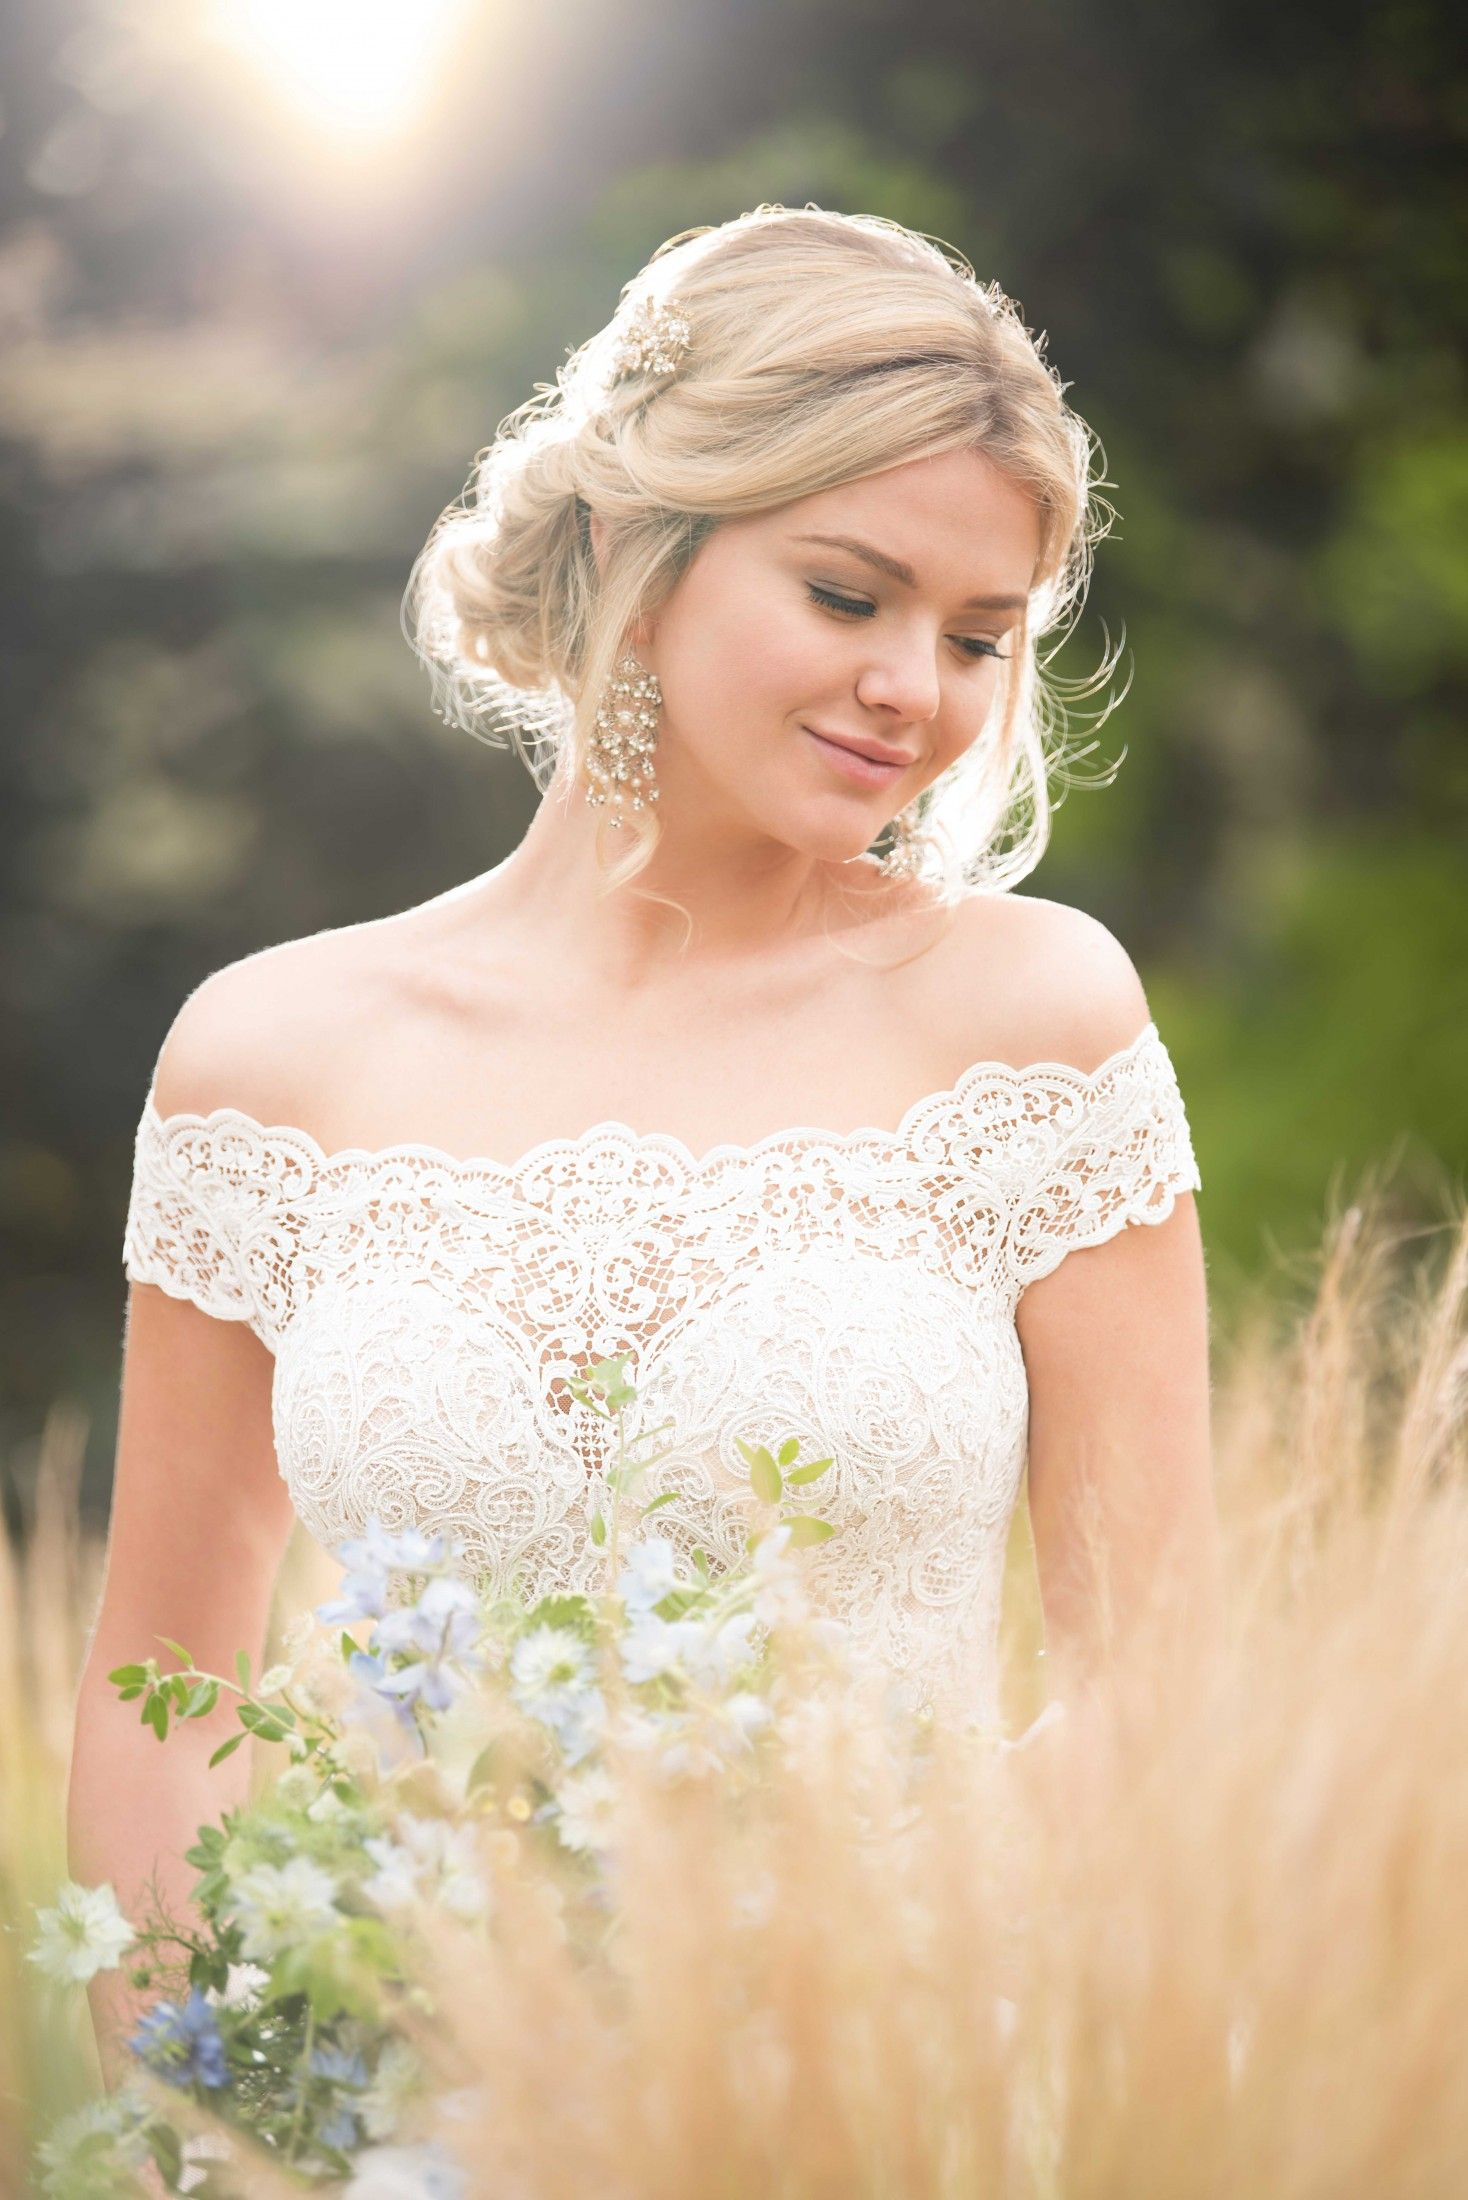 ad] Can\'t decide on a style? Click to find your dream wedding dress ...